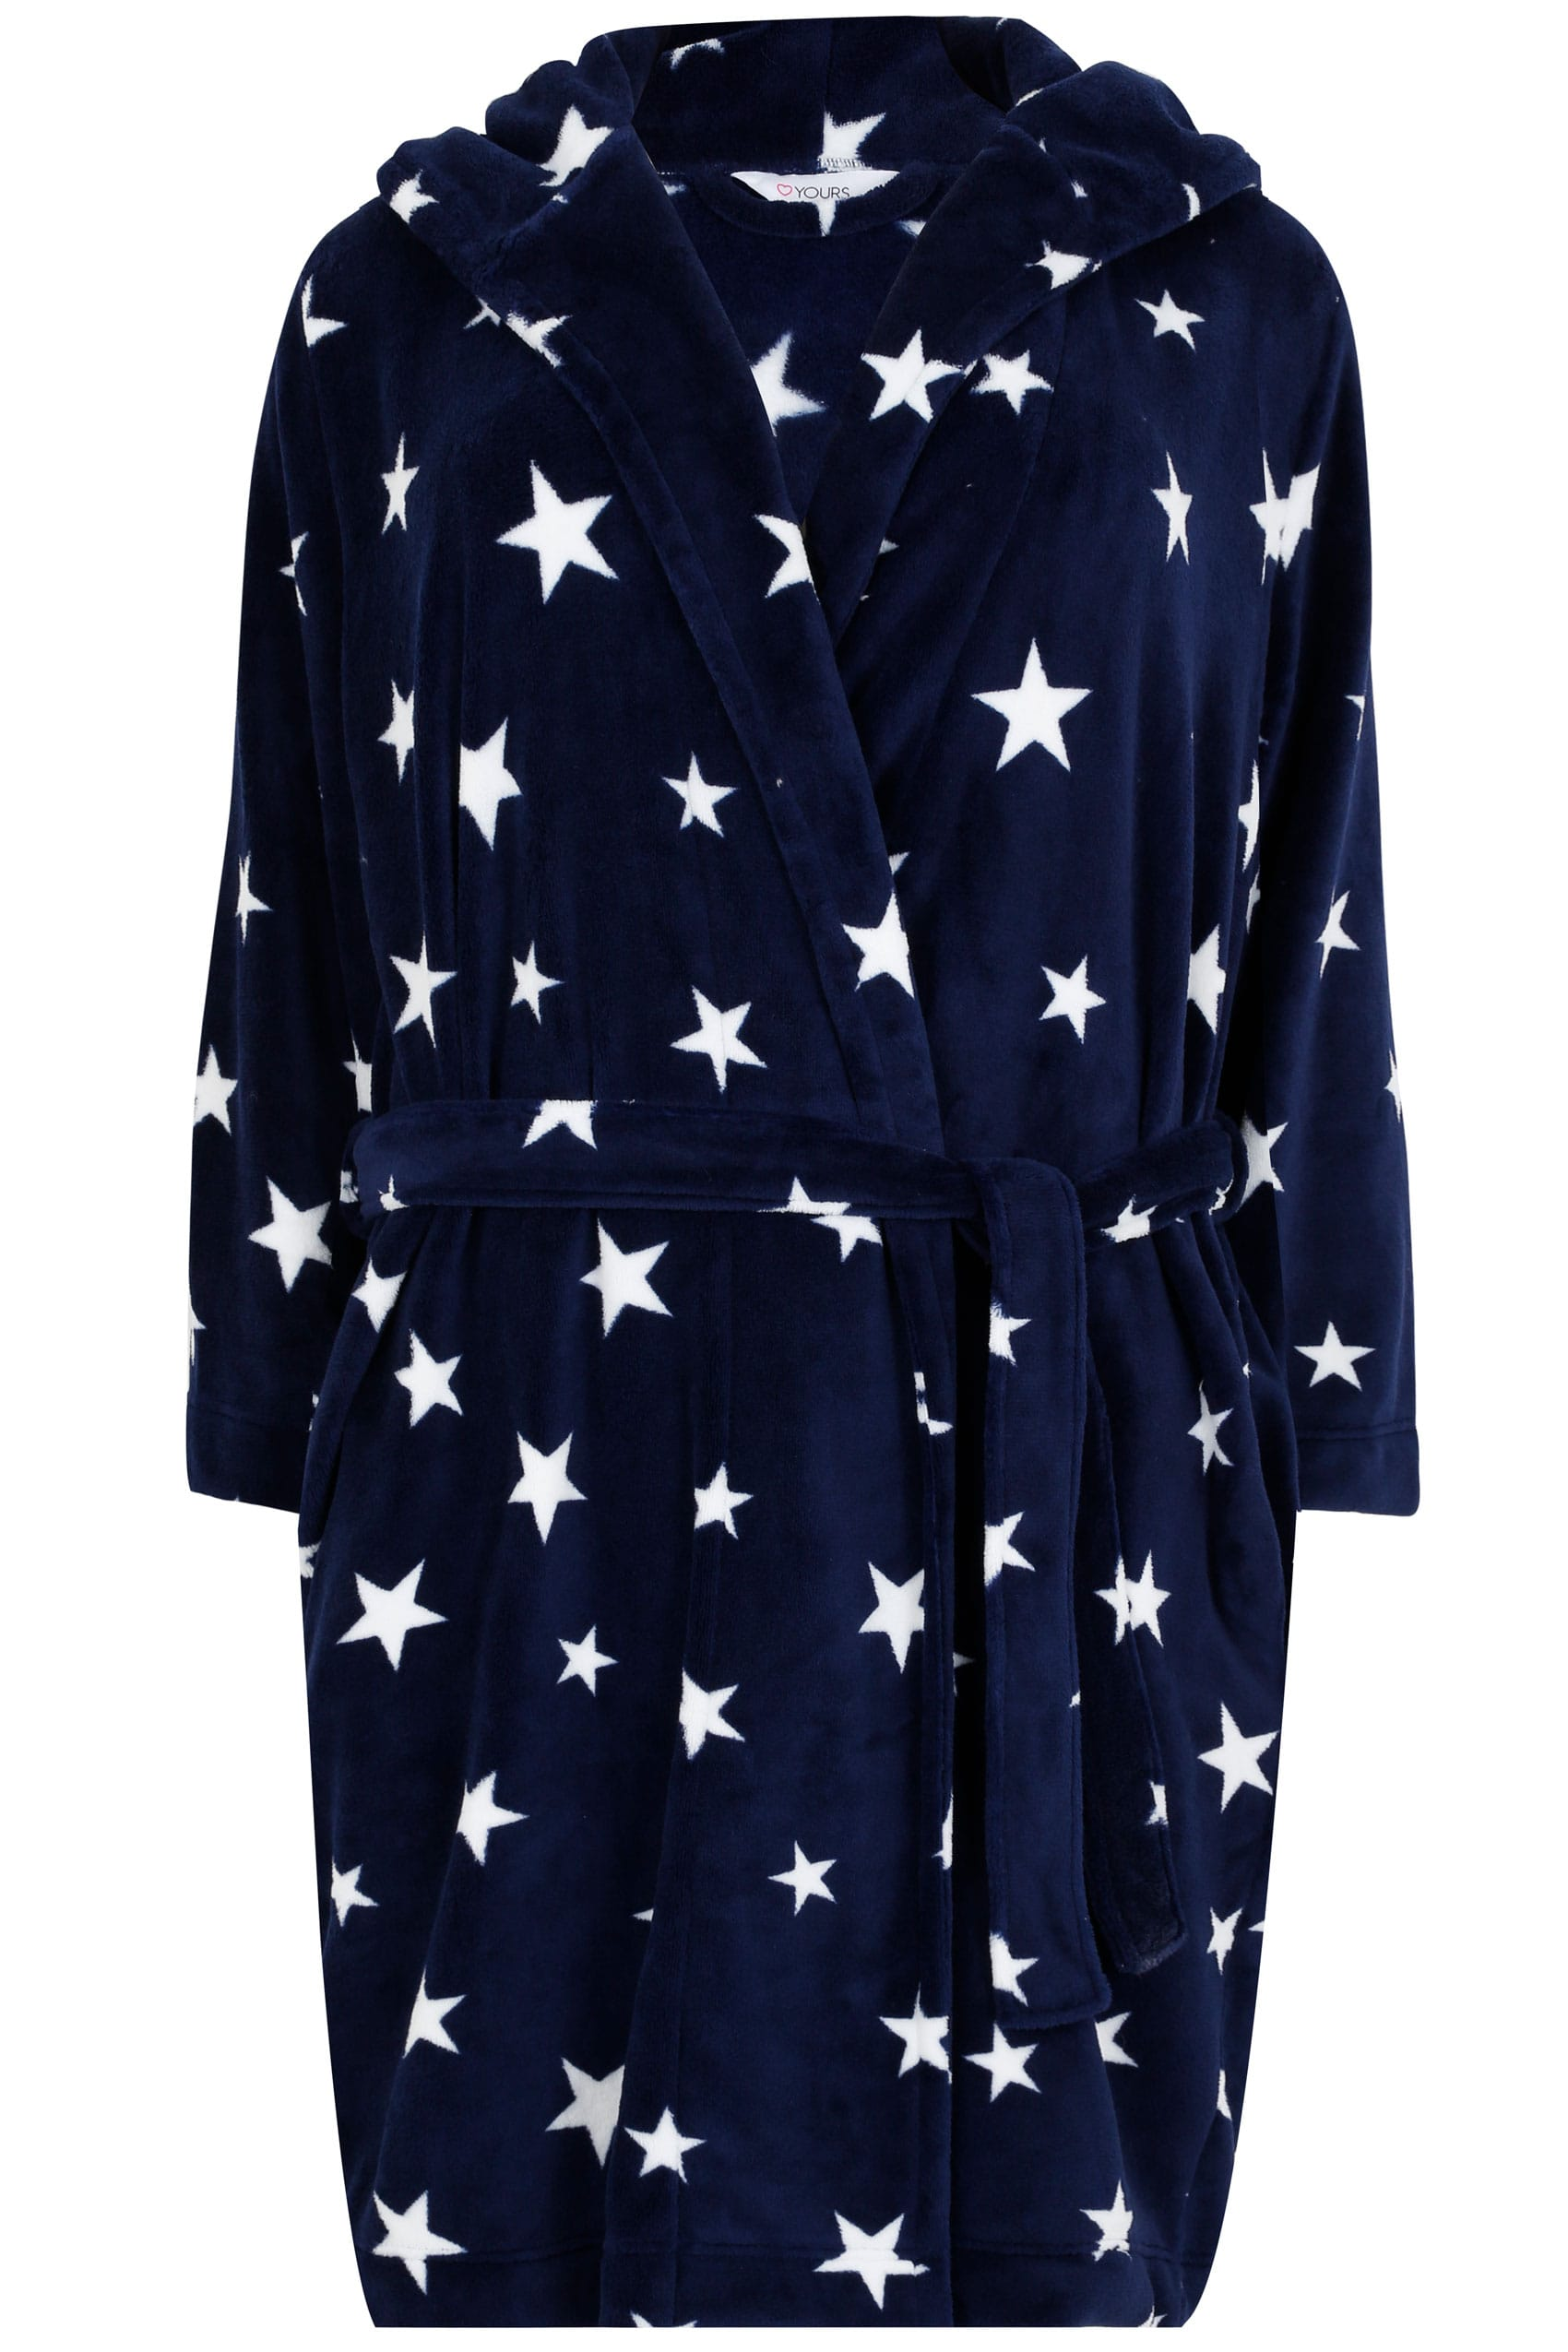 Navy Star Print Dressing Gown With Hood Plus Size 16 To 36 Tendencies Caps Pop